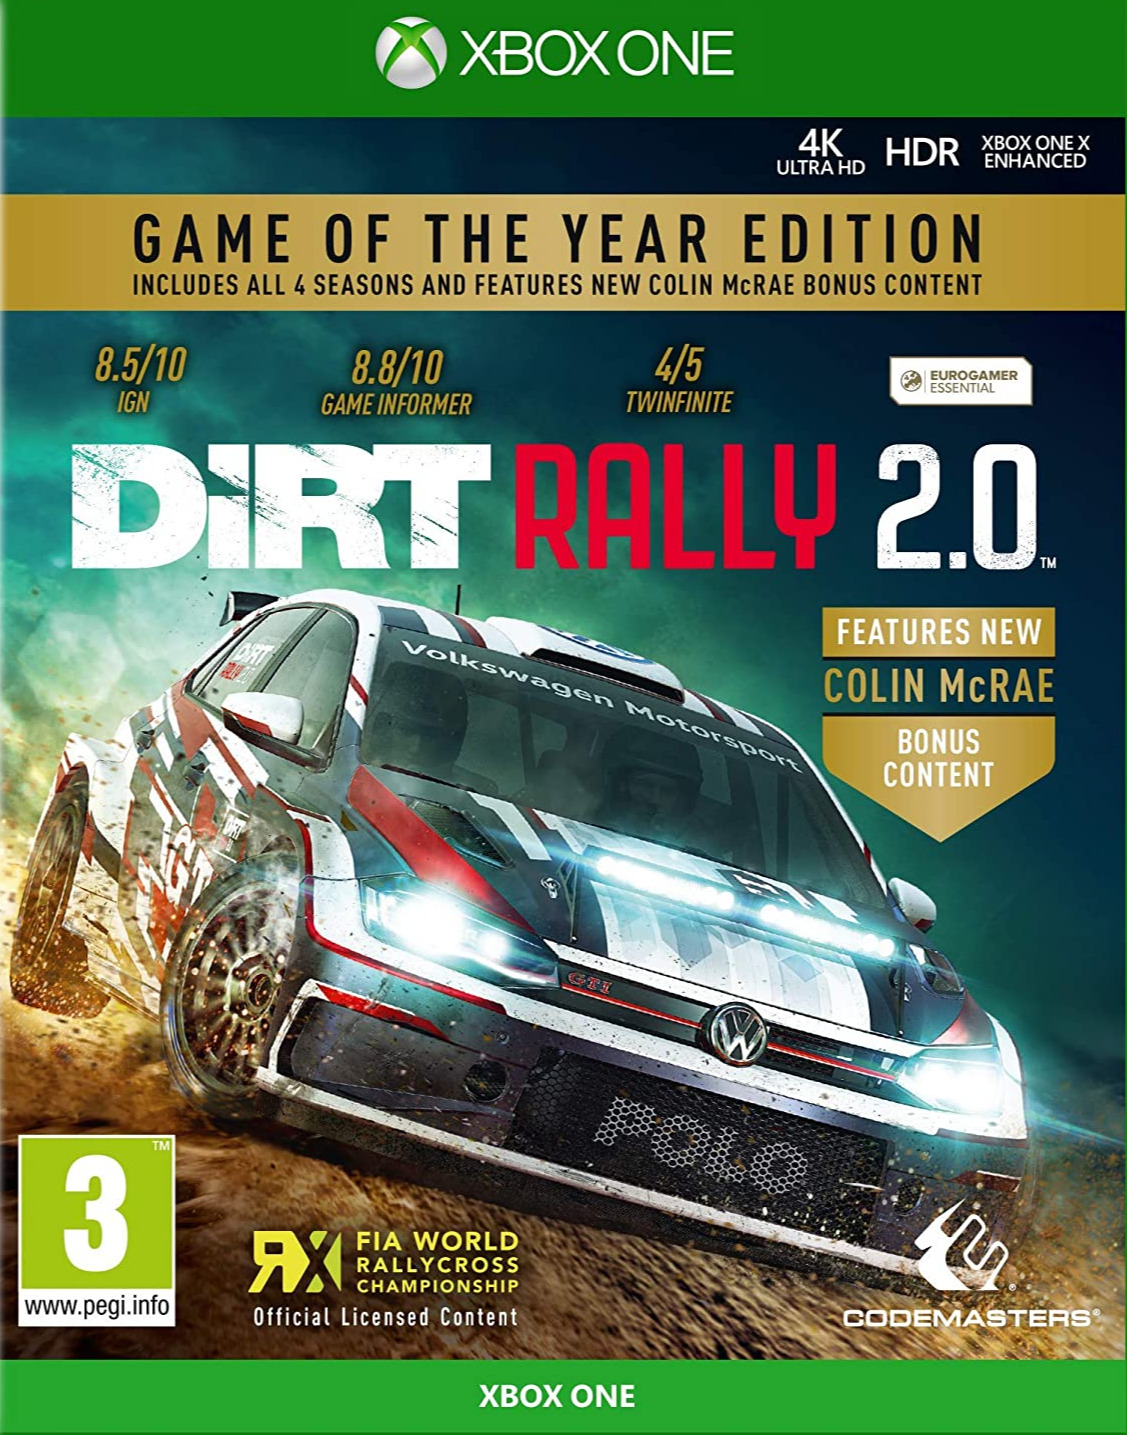 DiRT Rally 2.0 - Game of the Year Edition (XONE)